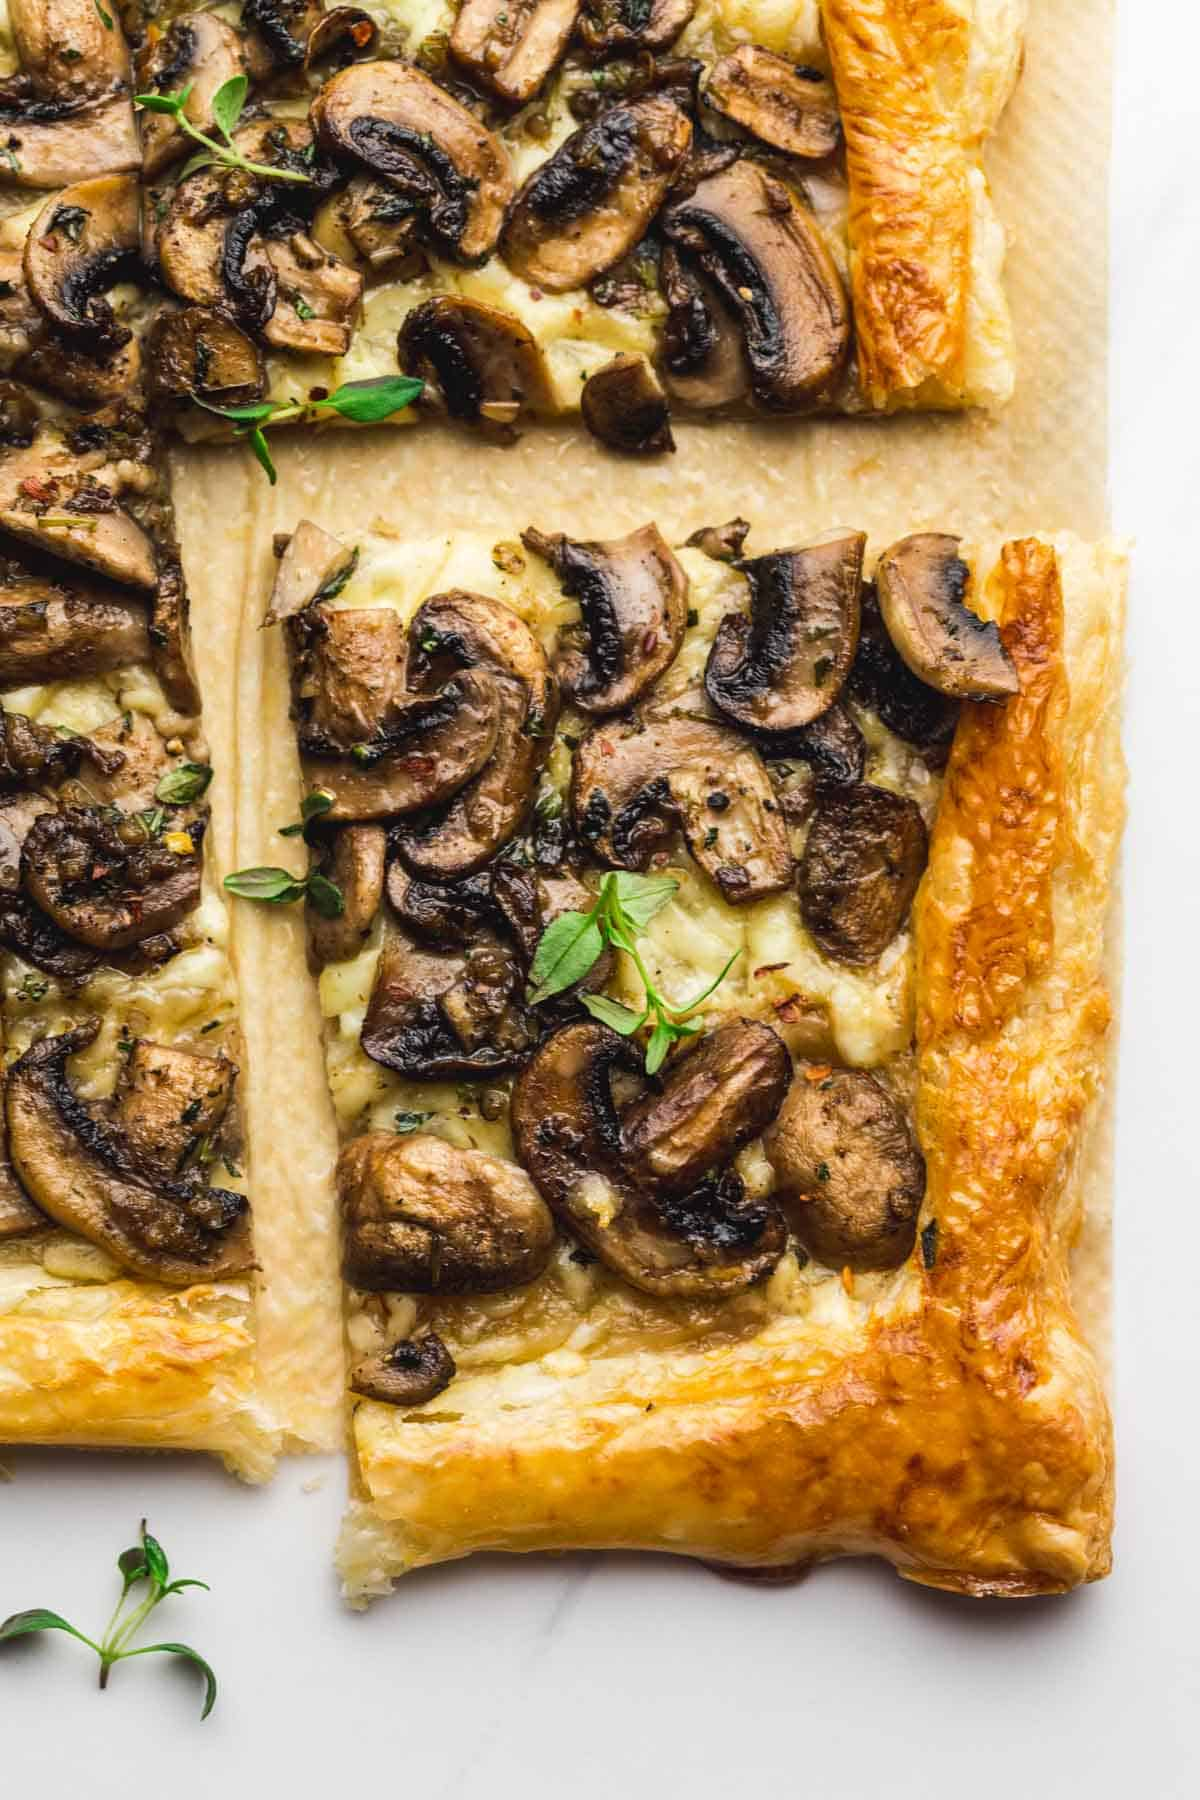 A slice of mushroom tart on parchment paper